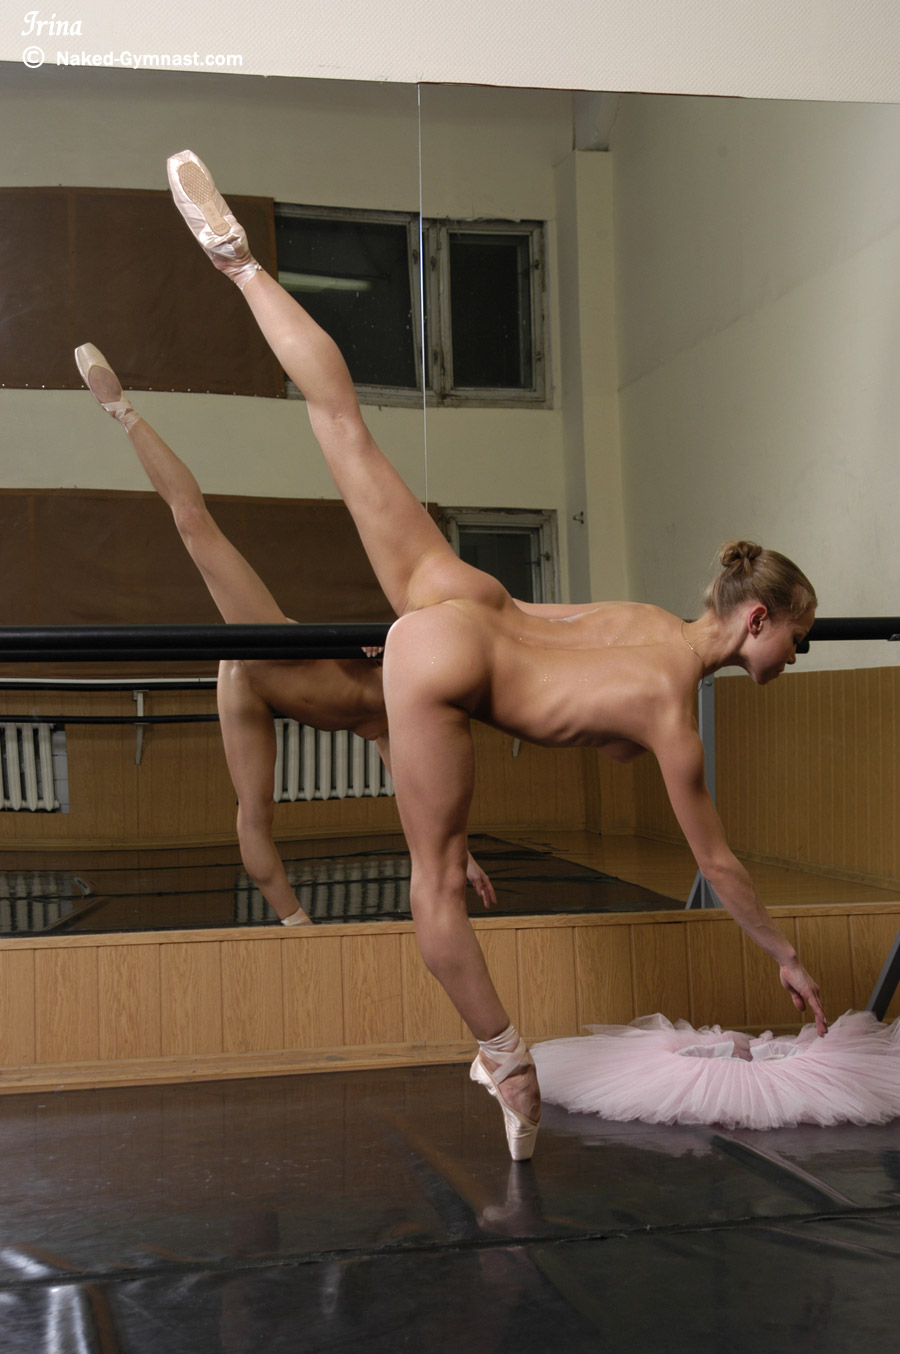 Gymnast Porn  Popular Videos  Page 1  FOXPORNSCOM